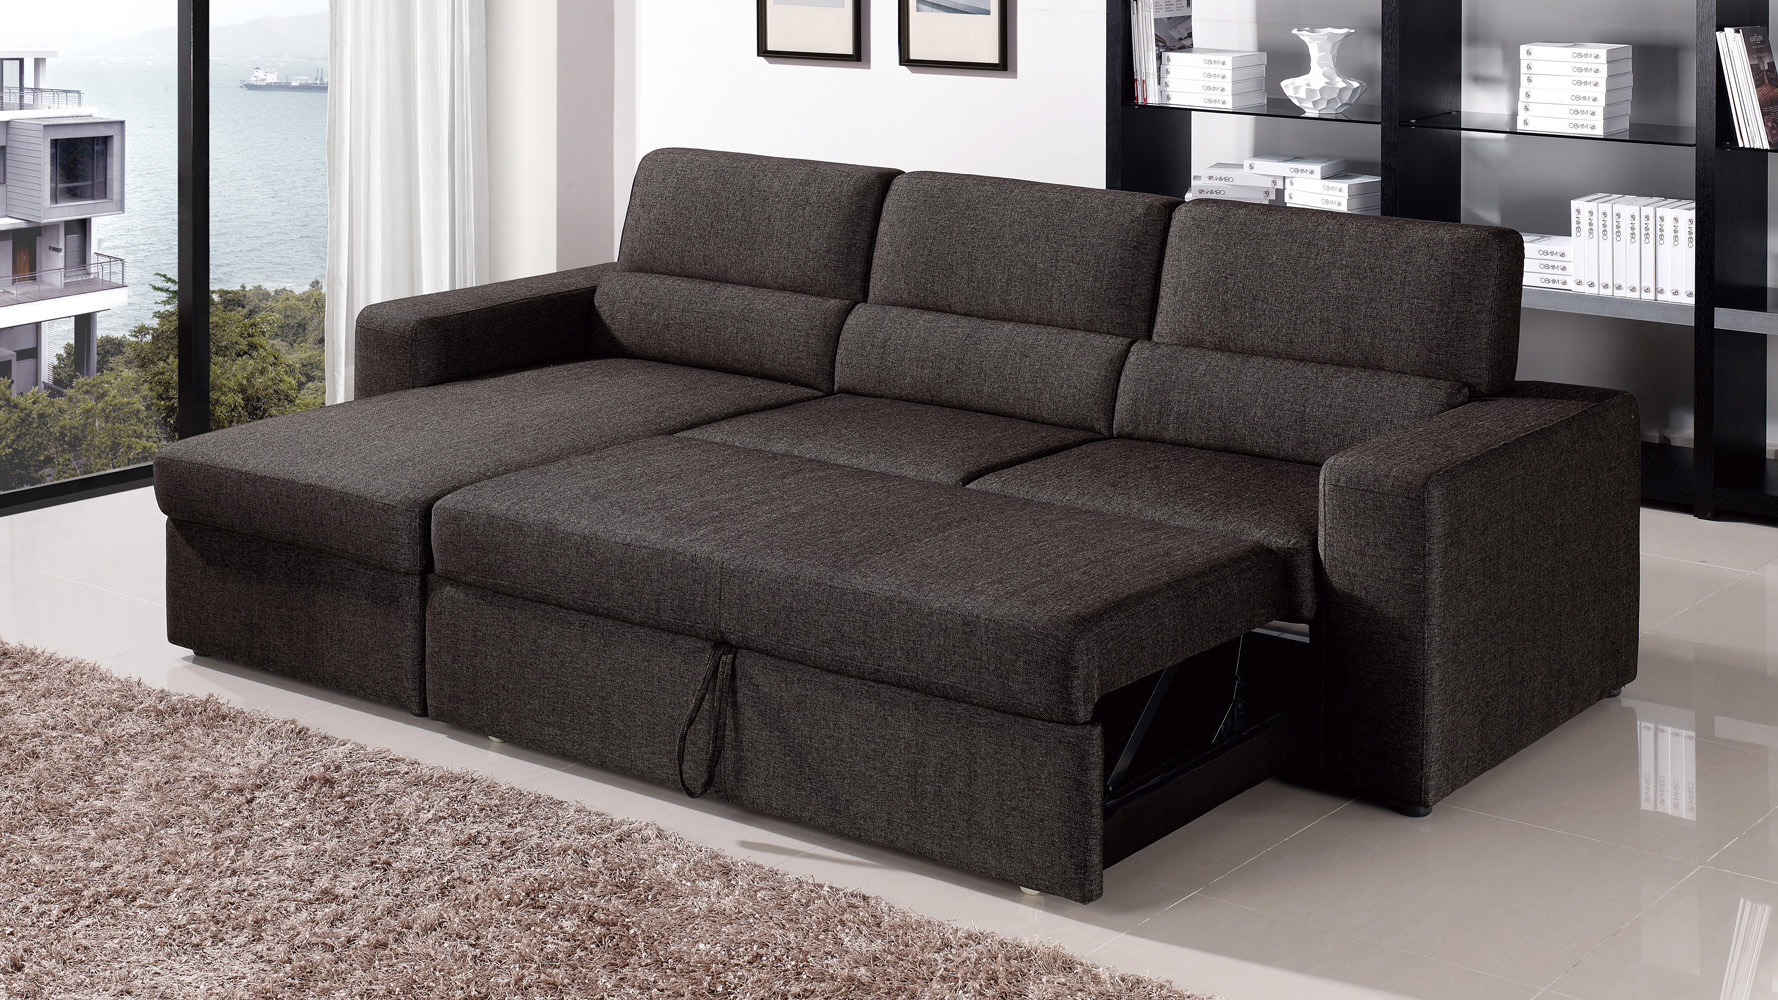 Full-size sectional sofa bed: Lazy Boy leather sofa beds Leather sofa beds EPIBPLB